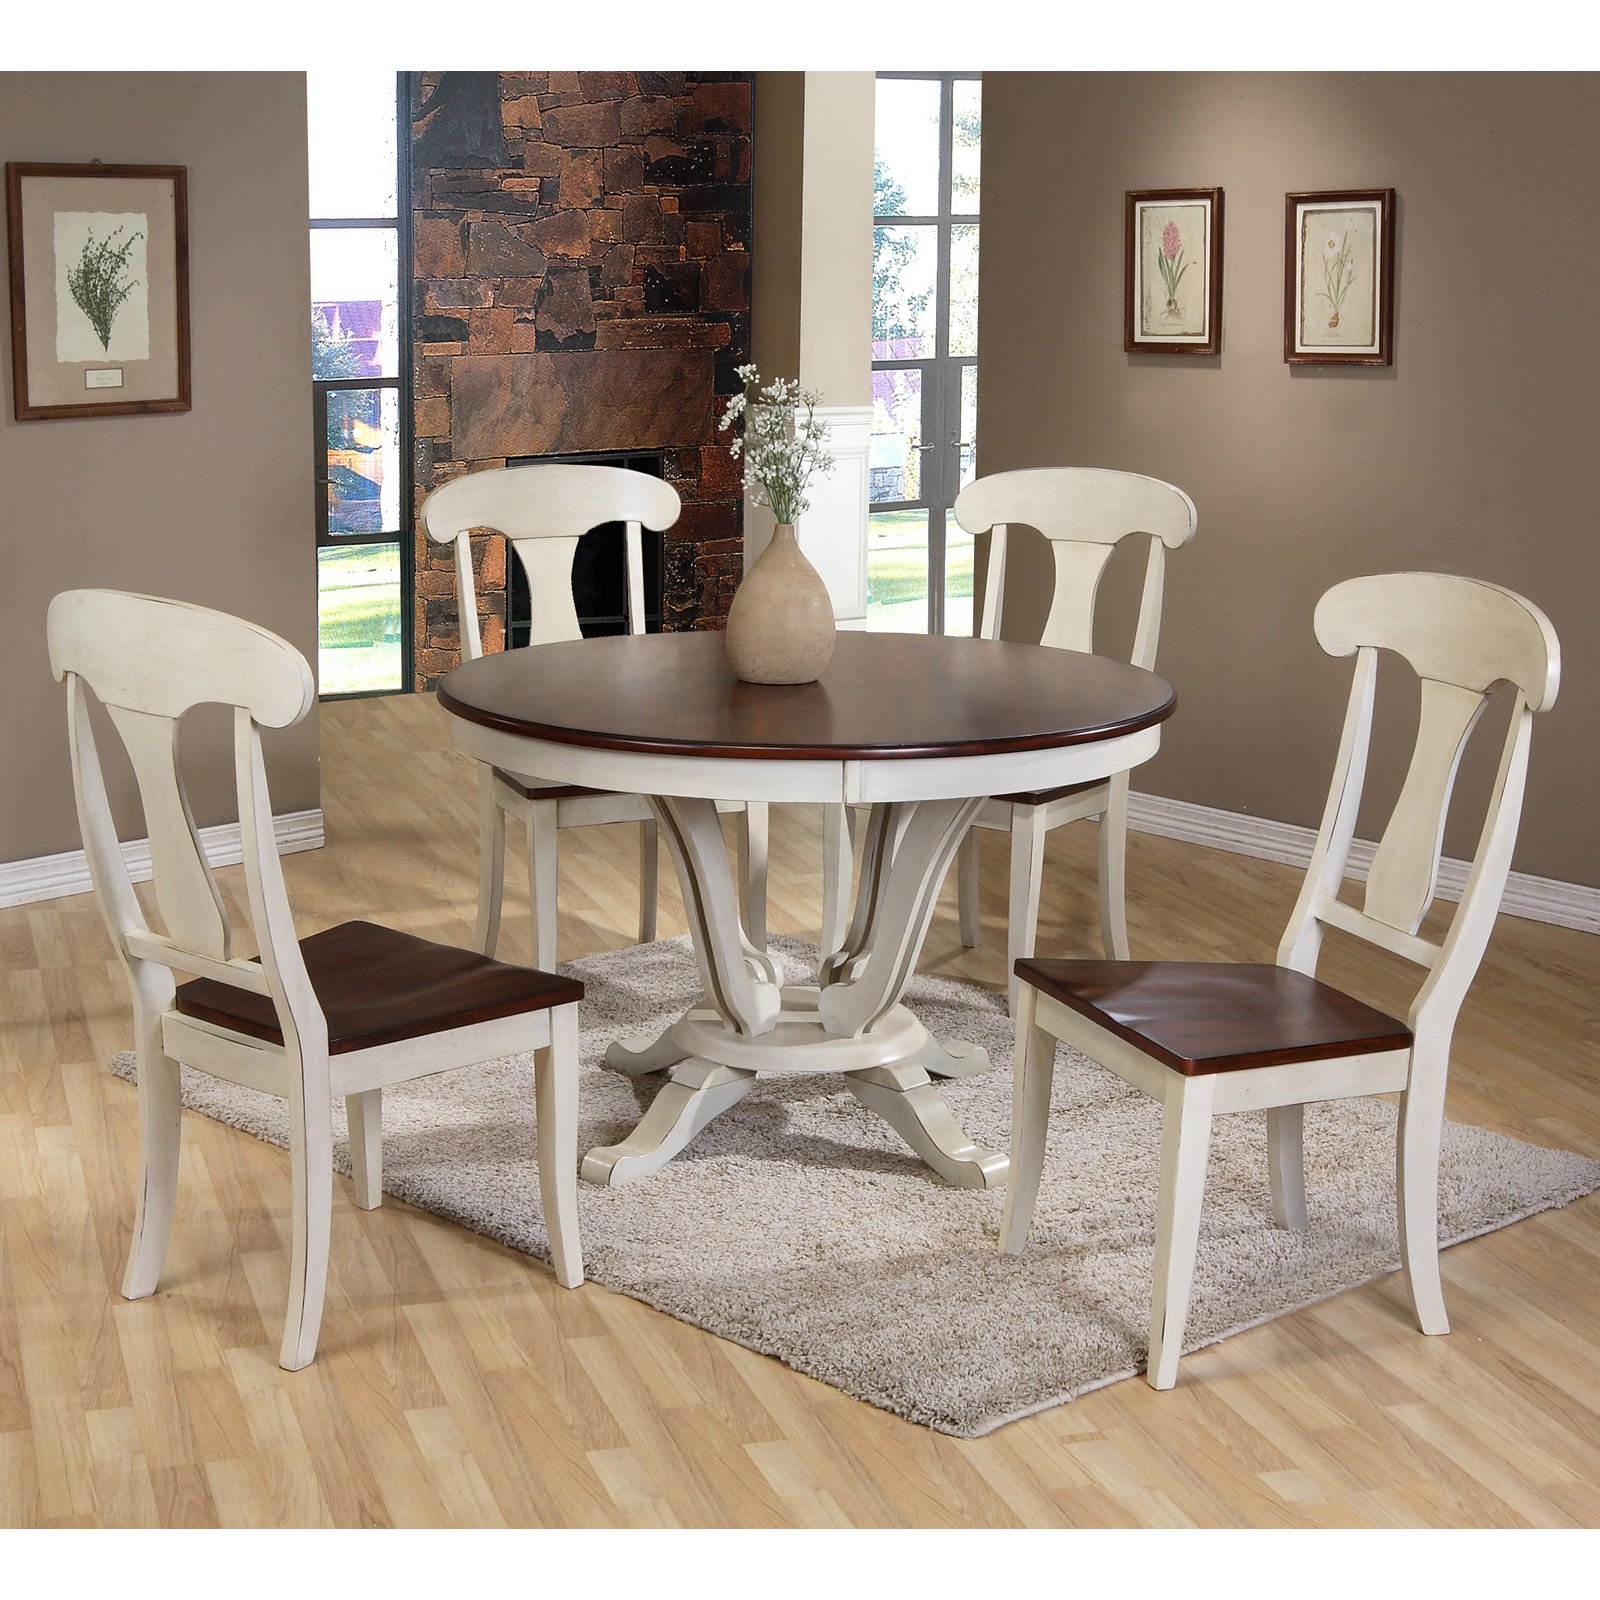 Ordinaire Baxton Studio Napoleon Chic Country Cottage 5 Piece Round Dining Table Set